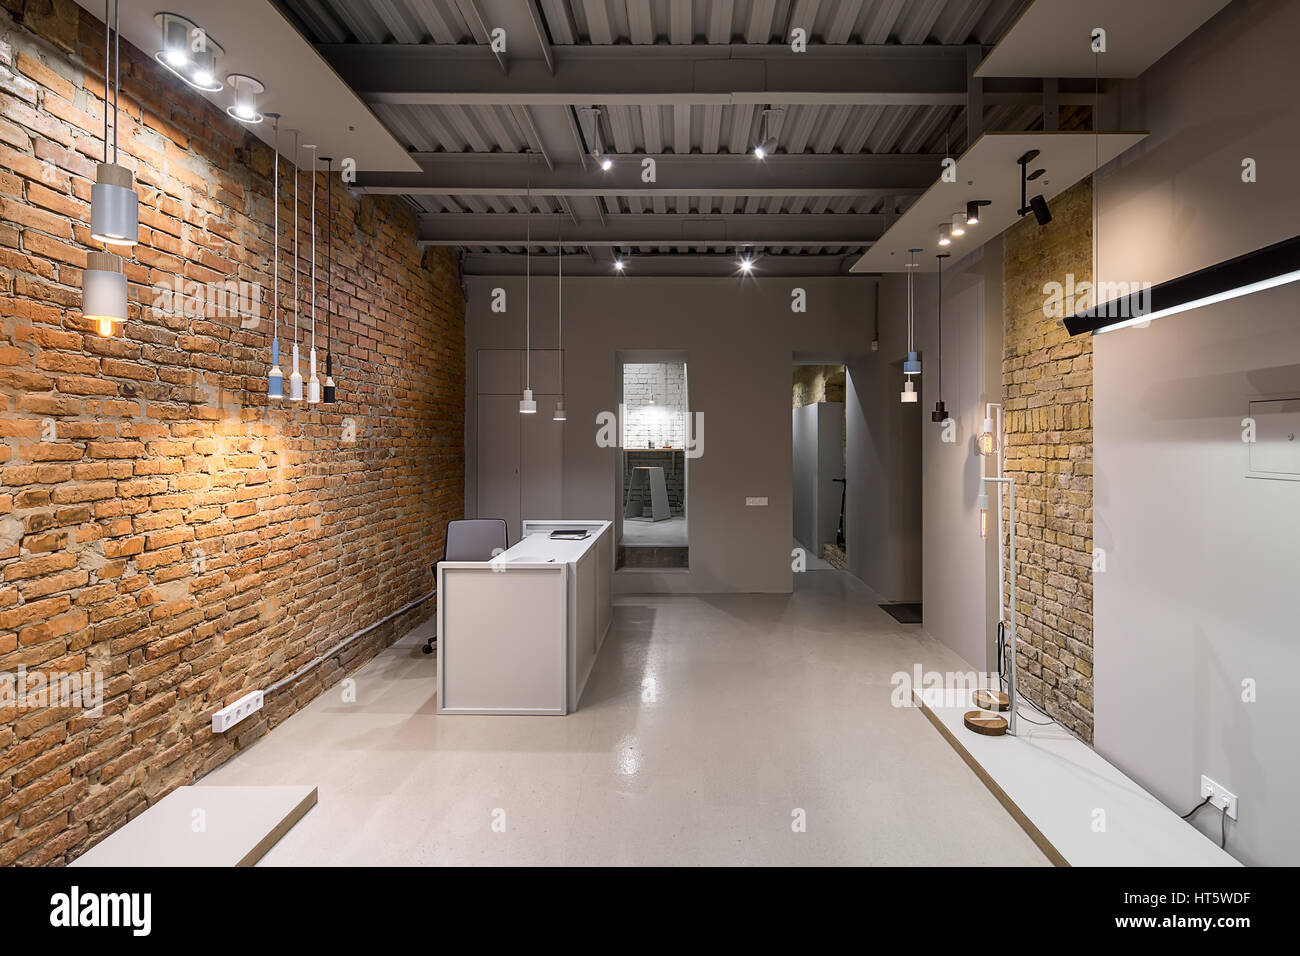 Office In A Loft Style With Brick And Gray Walls There